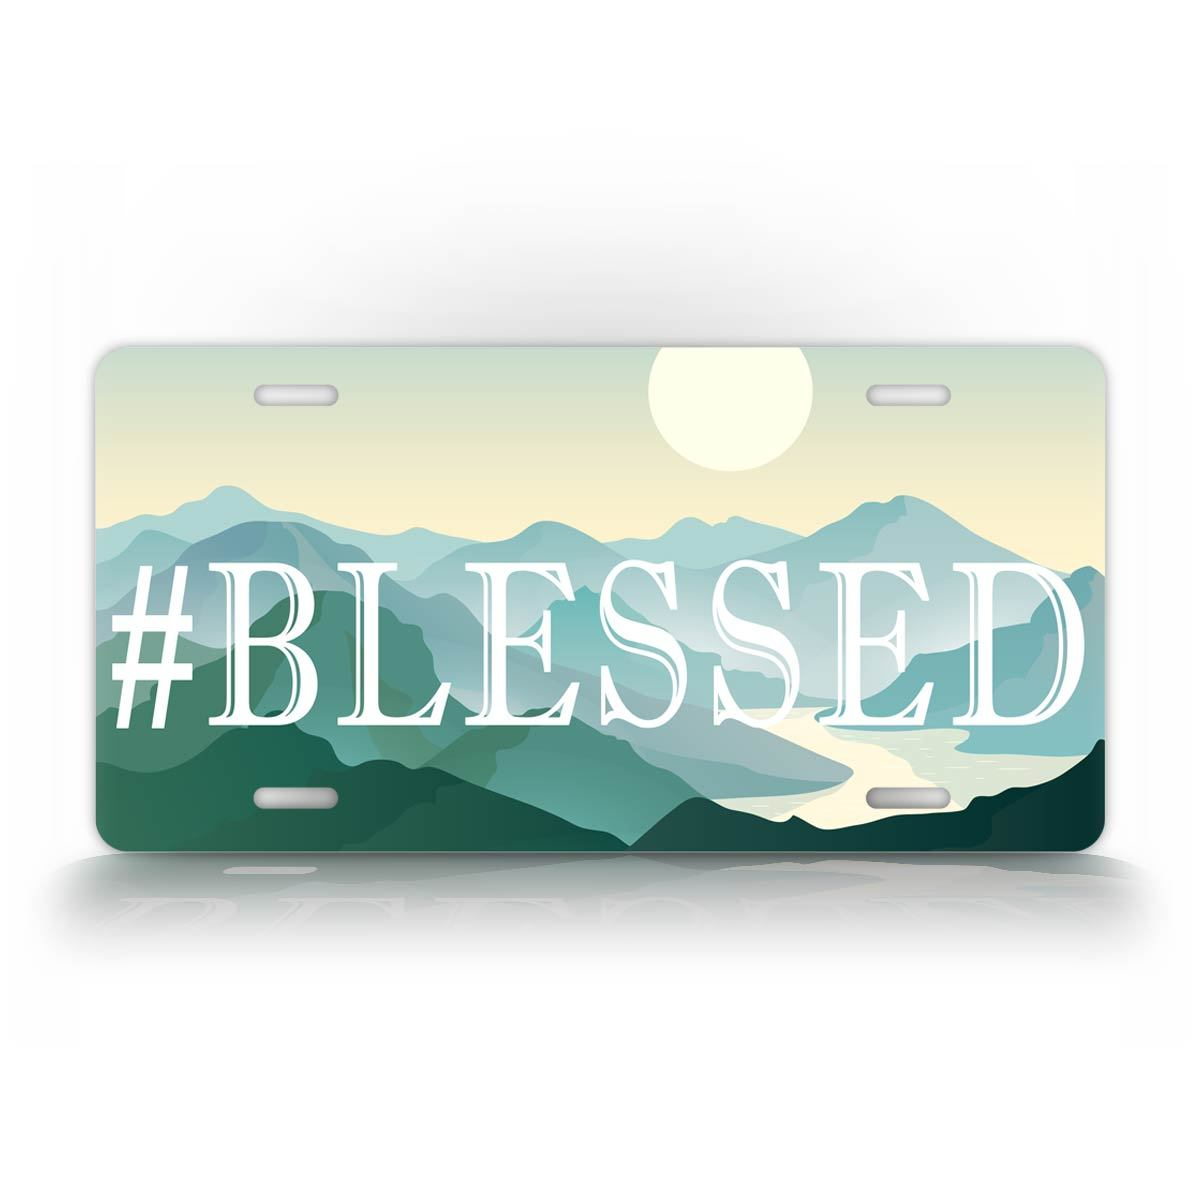 Hashtag Blessed Mountains License Plate Tag